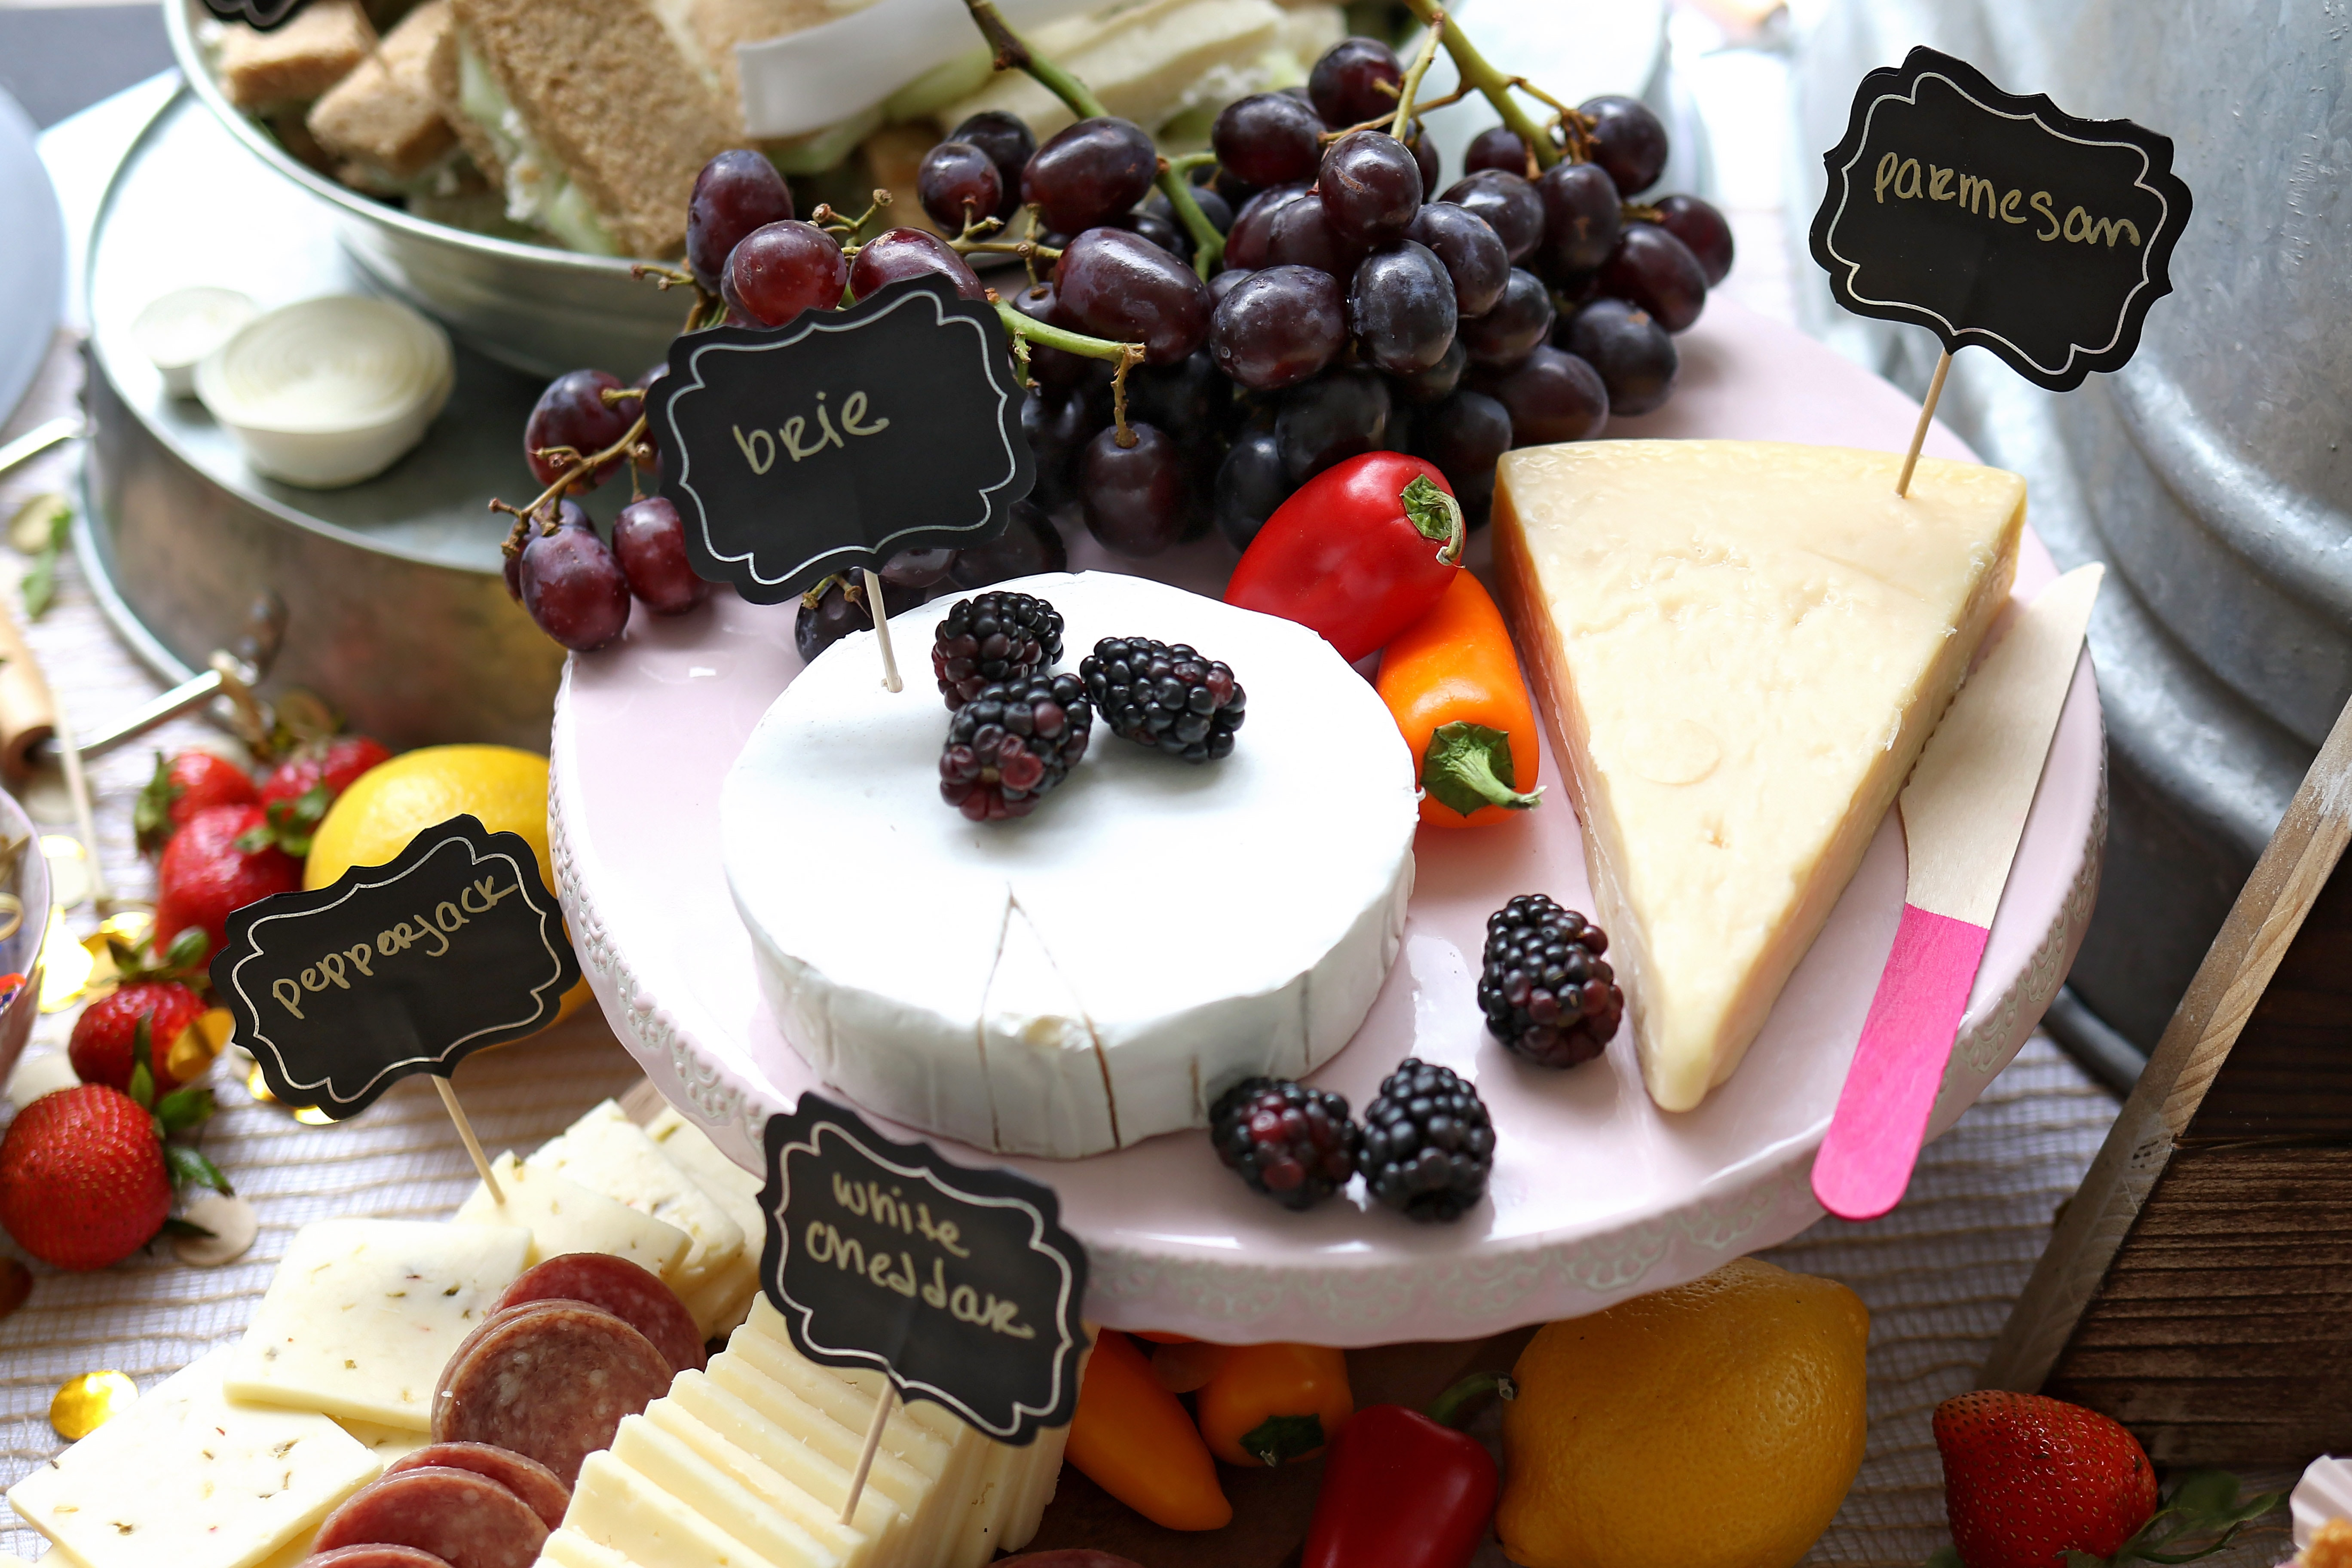 8 easy steps to making an awesome Cheese Board